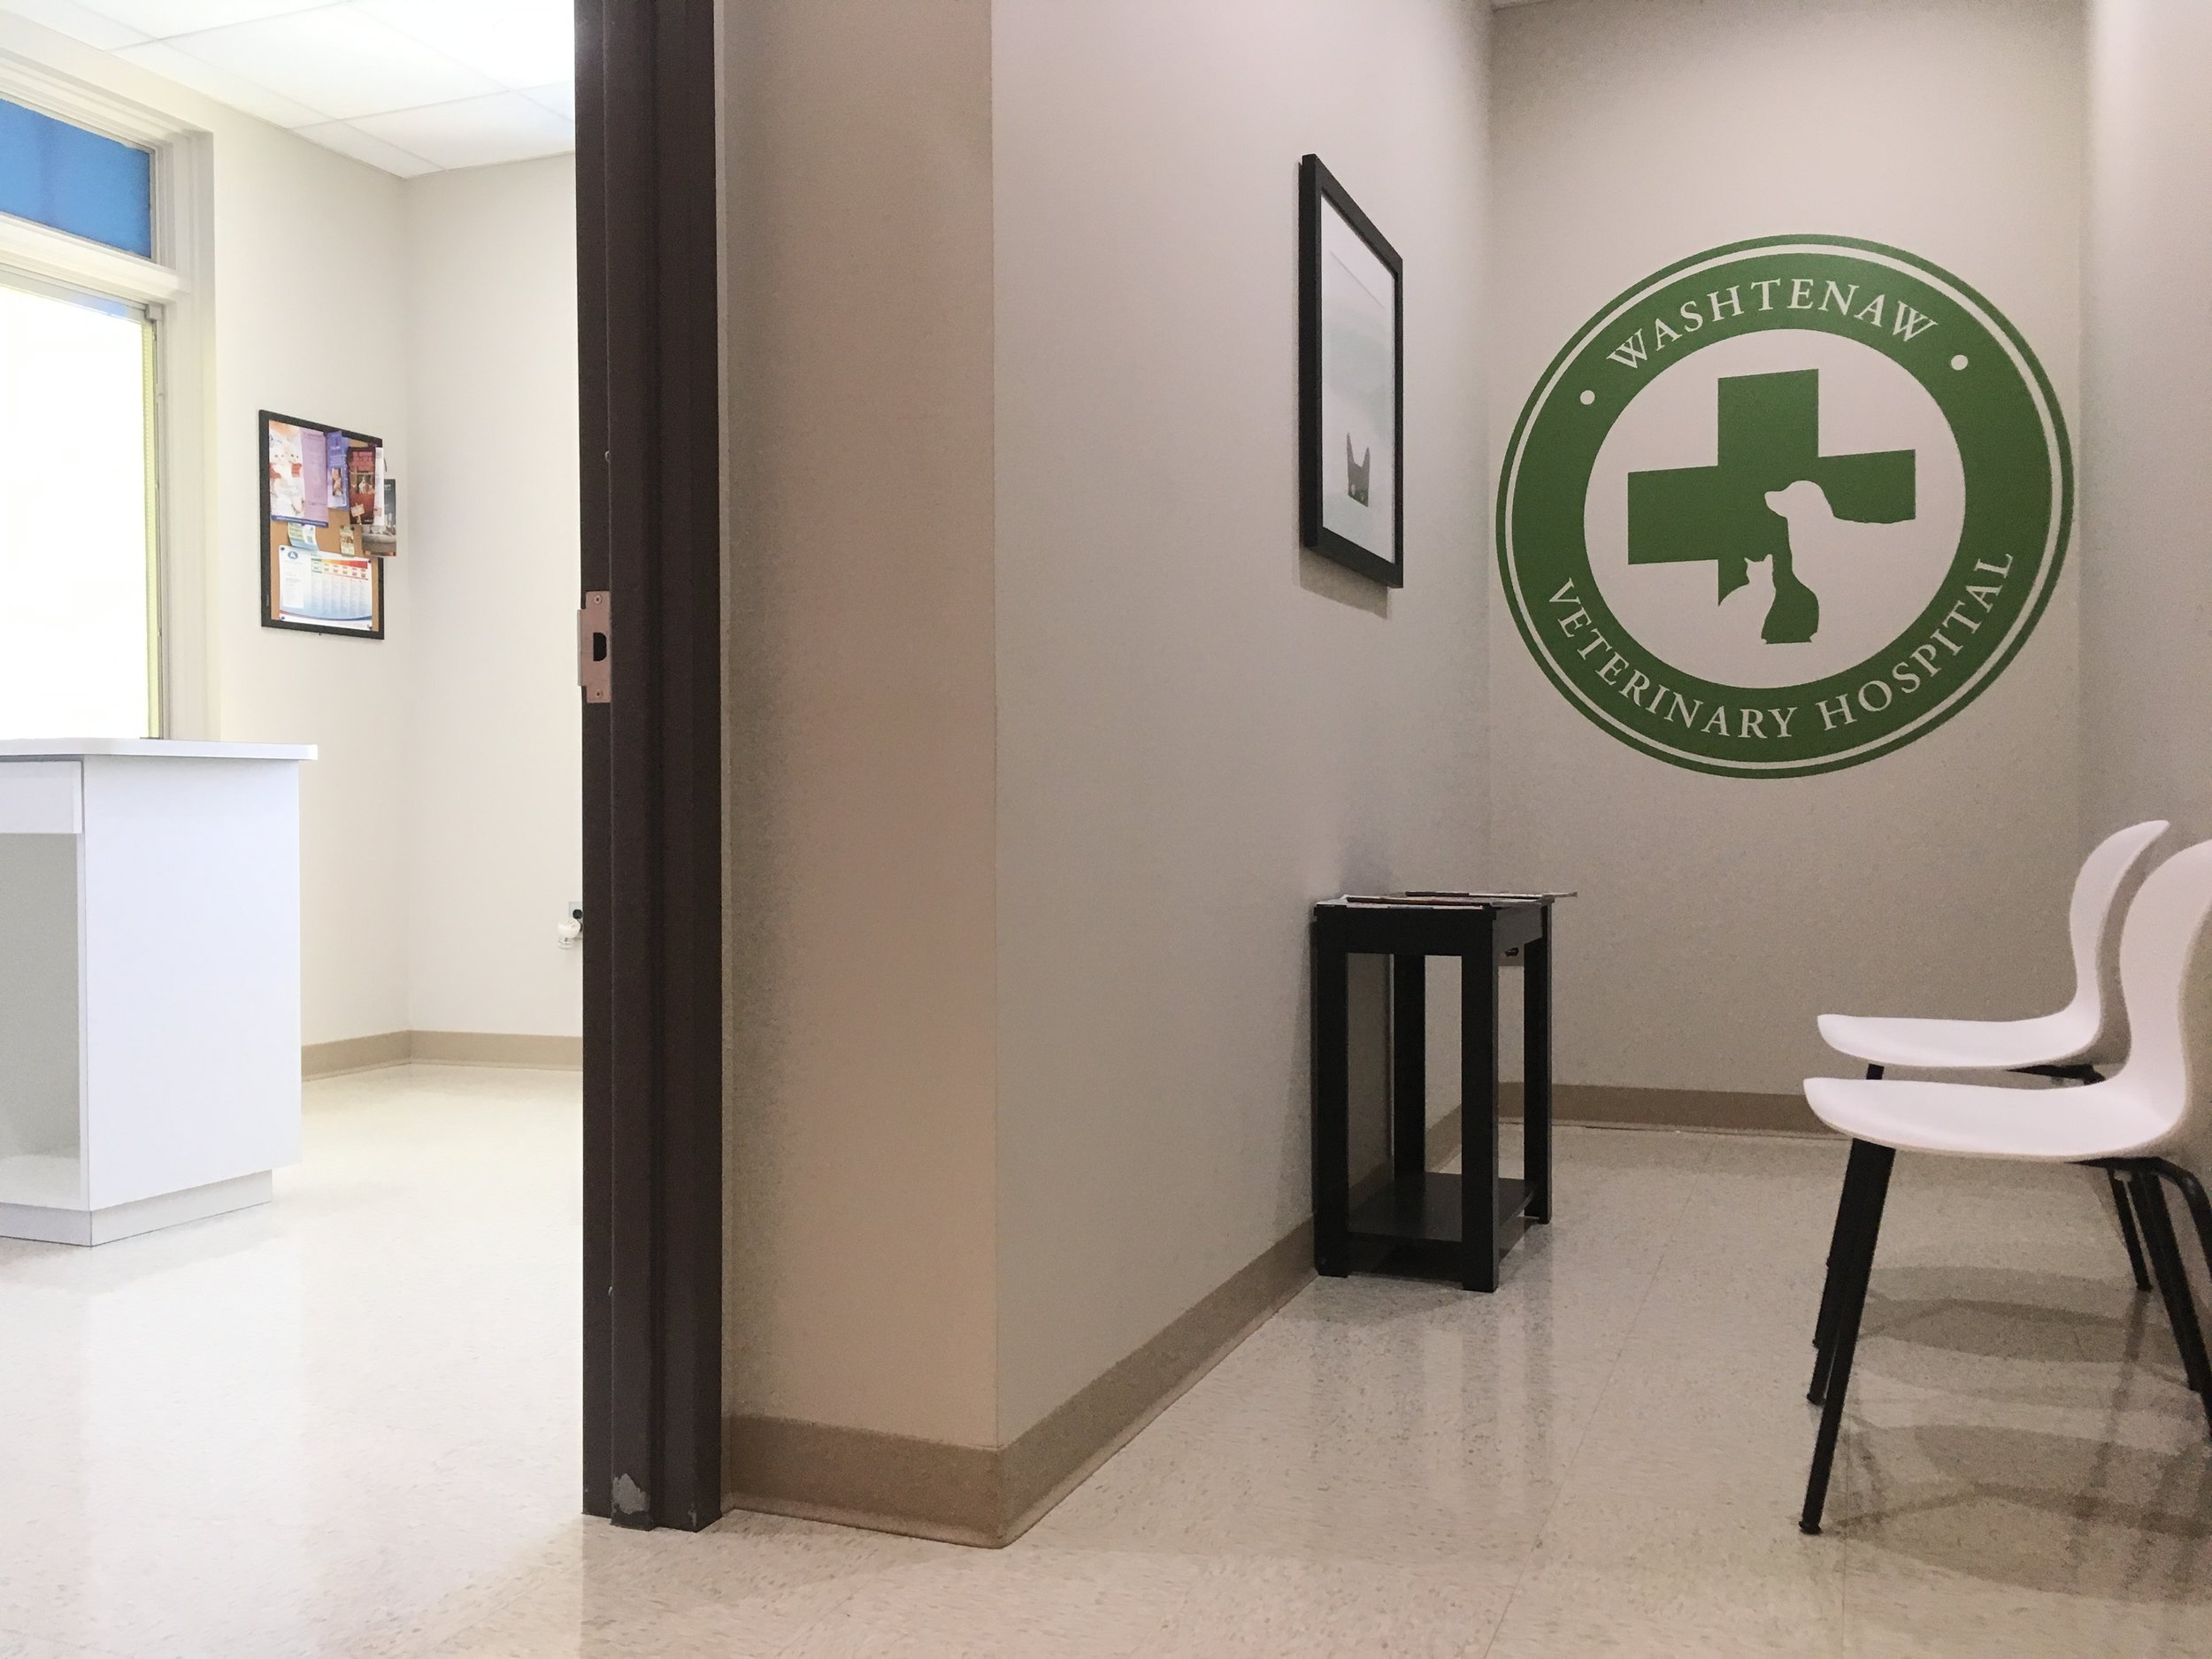 Feline waiting area and exam room entrance.